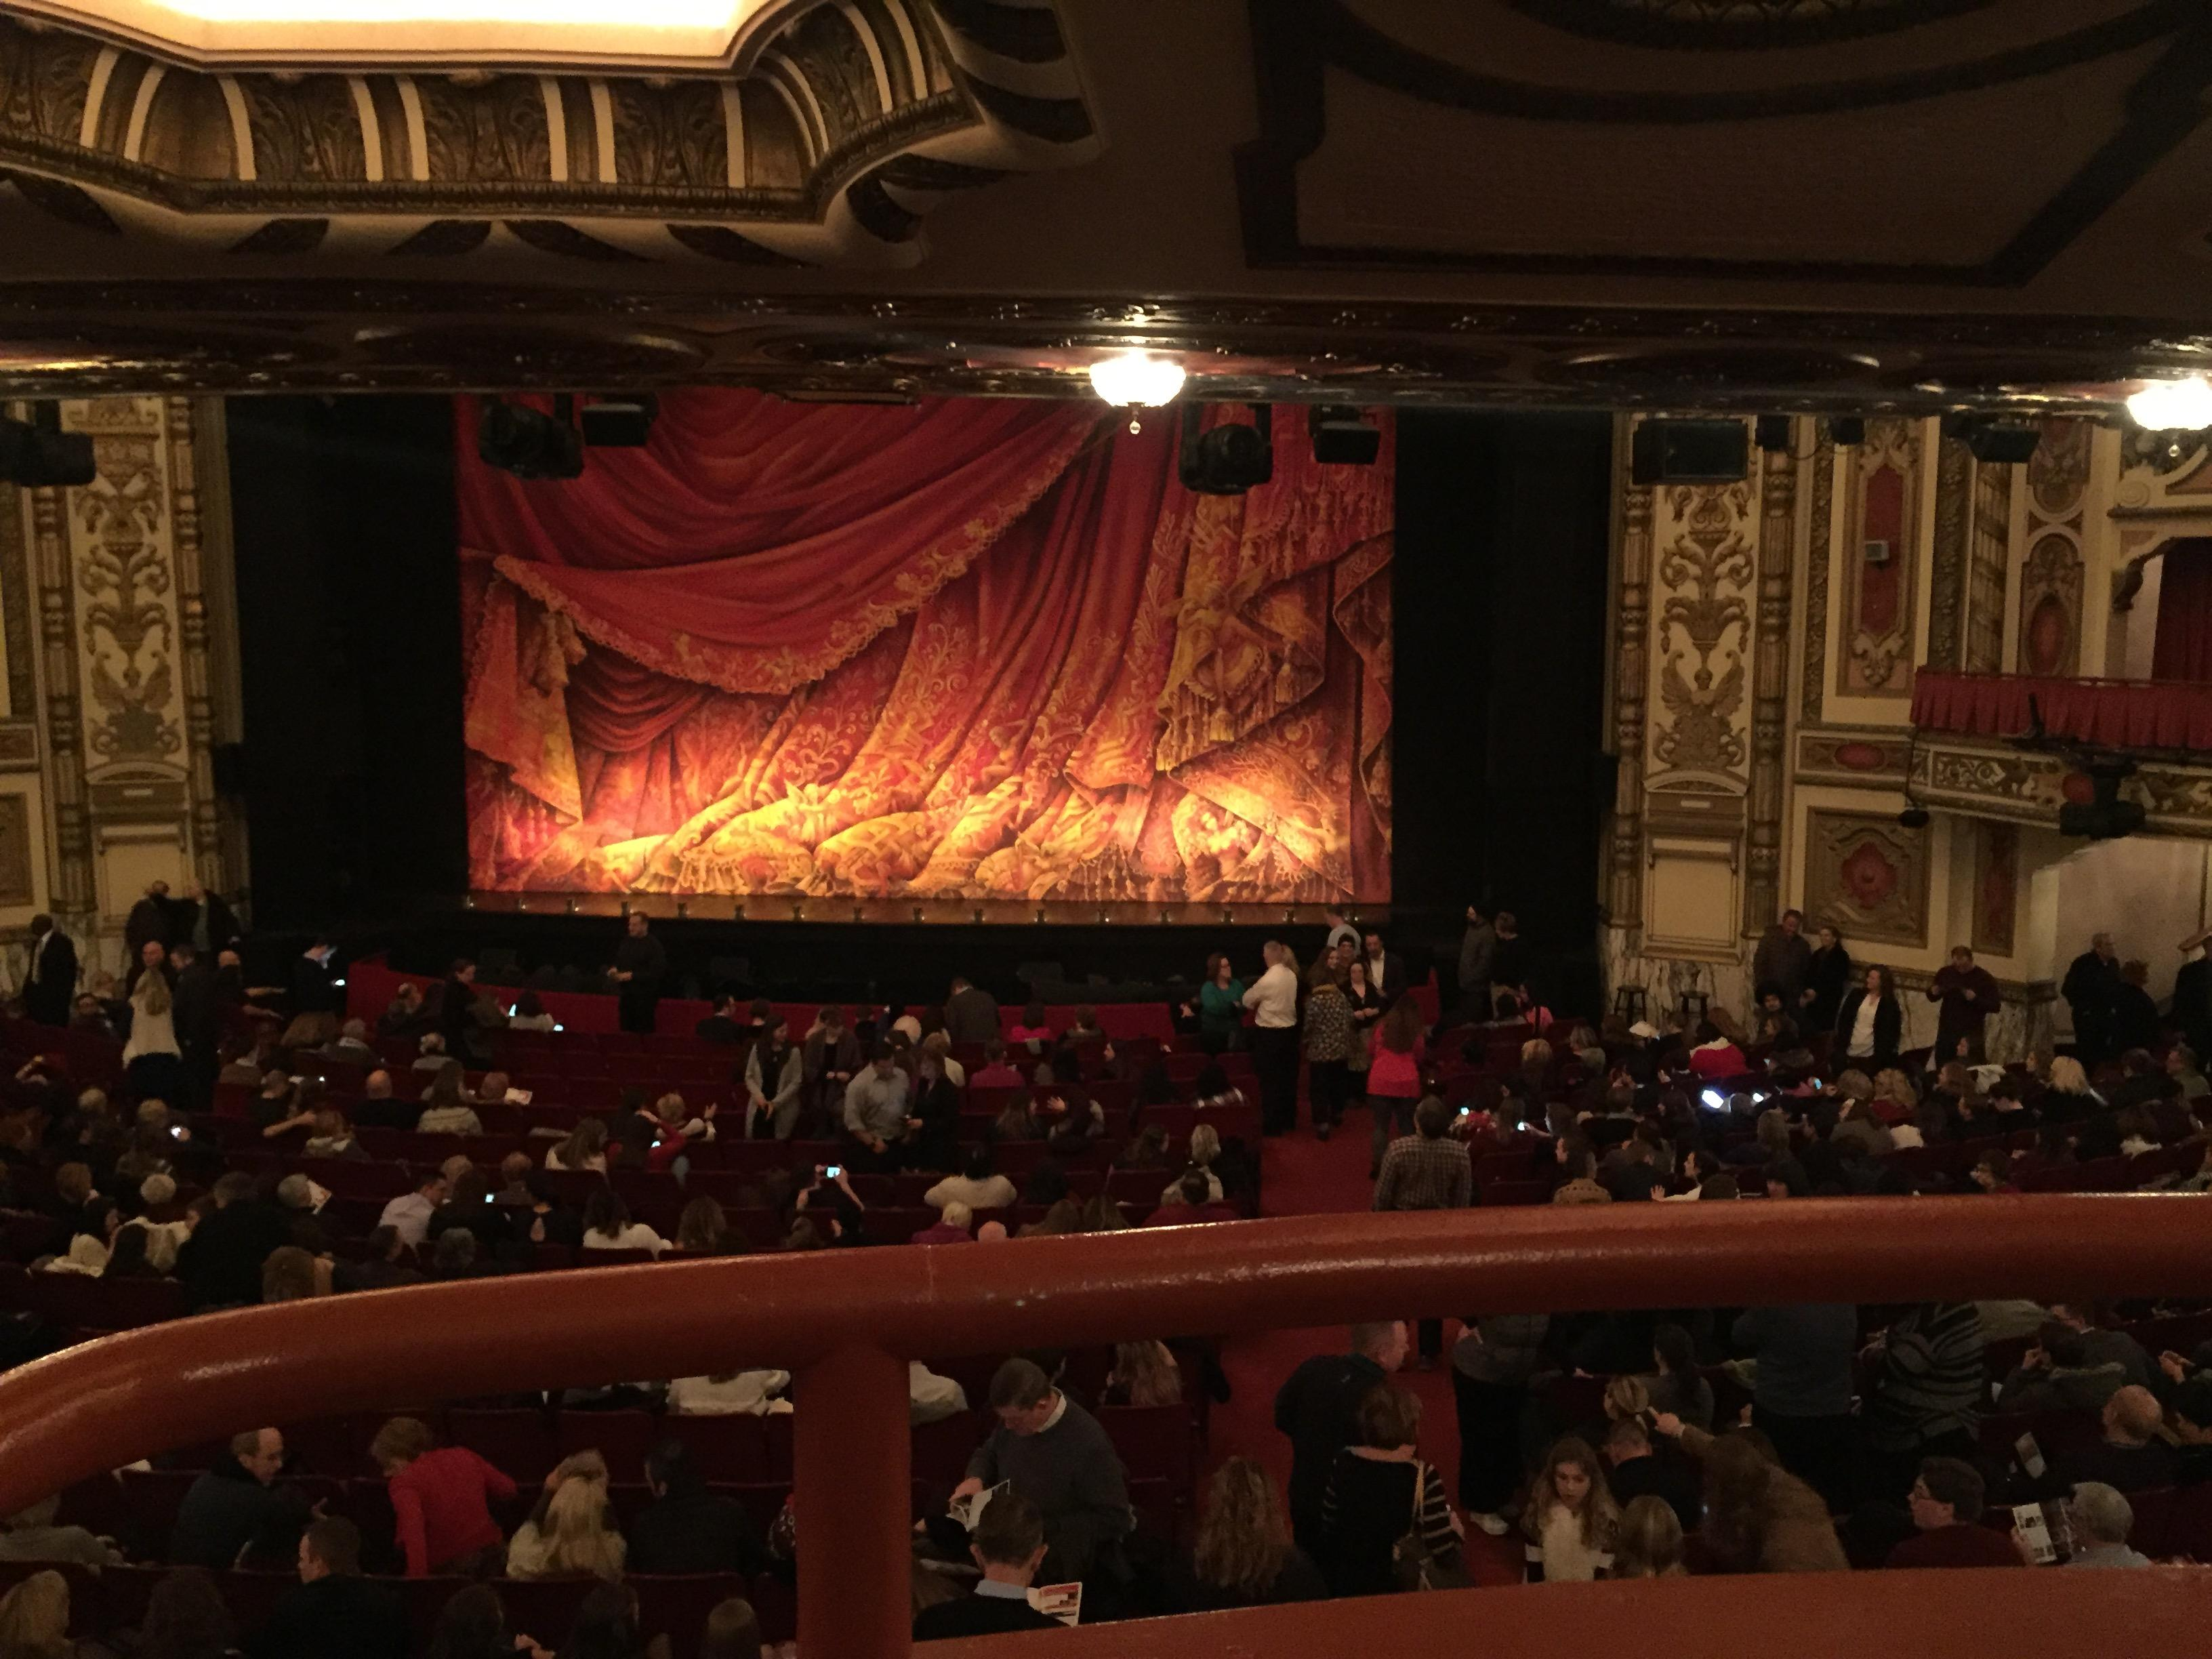 Cadillac Palace Theater Section dress circle rc Row A Seat 224